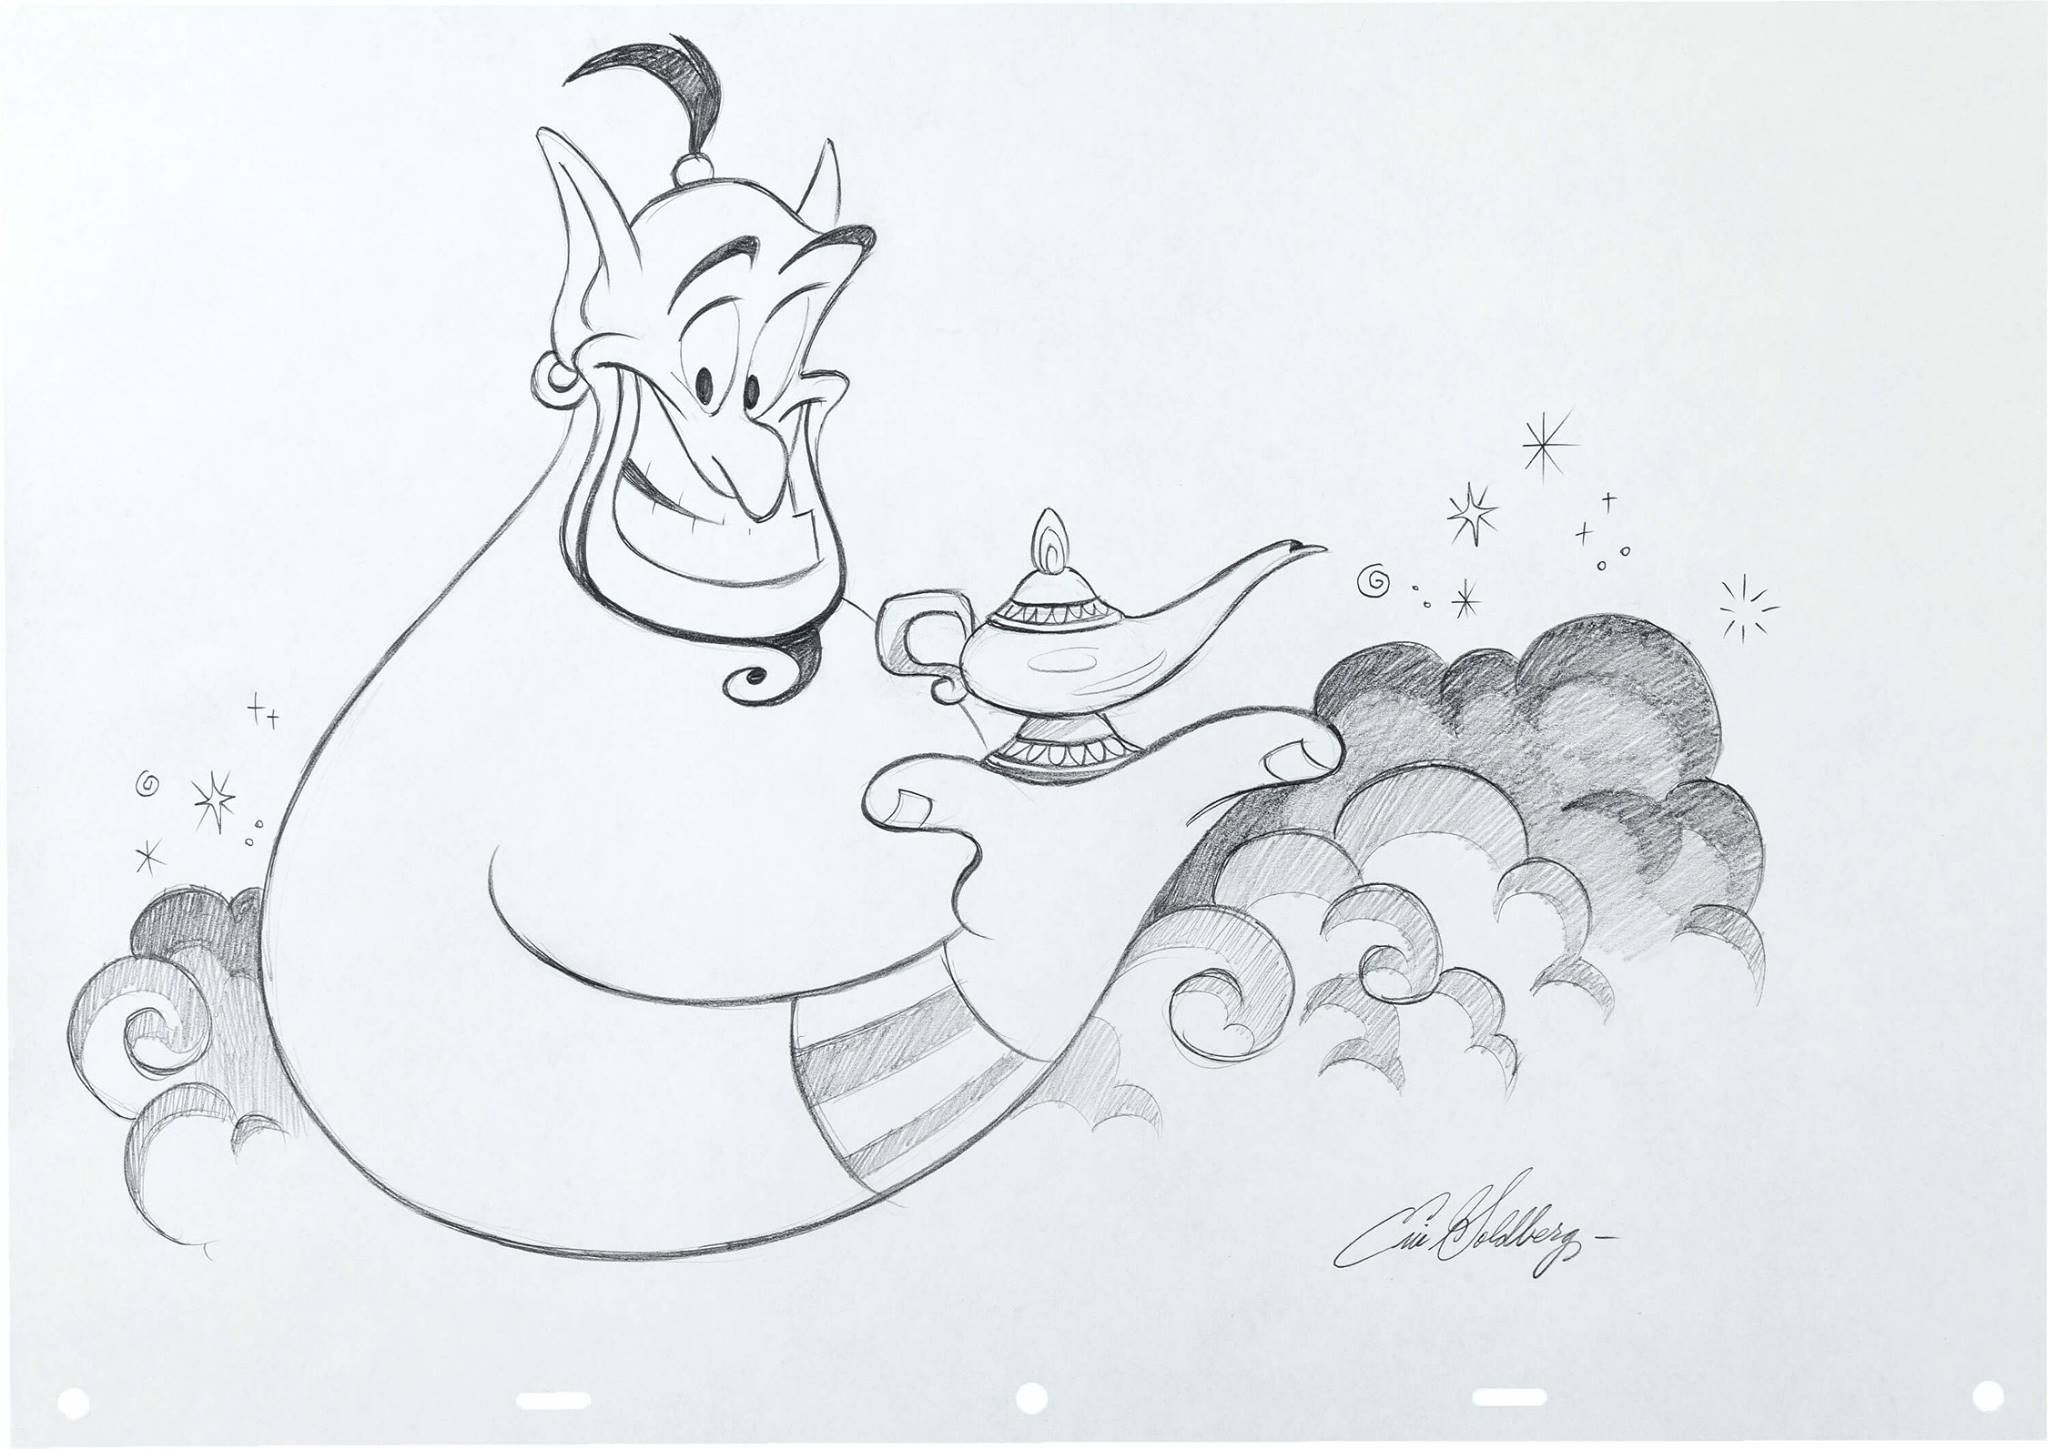 Eric goldberg aladdins genie drawing 2 048x1 449 пикс